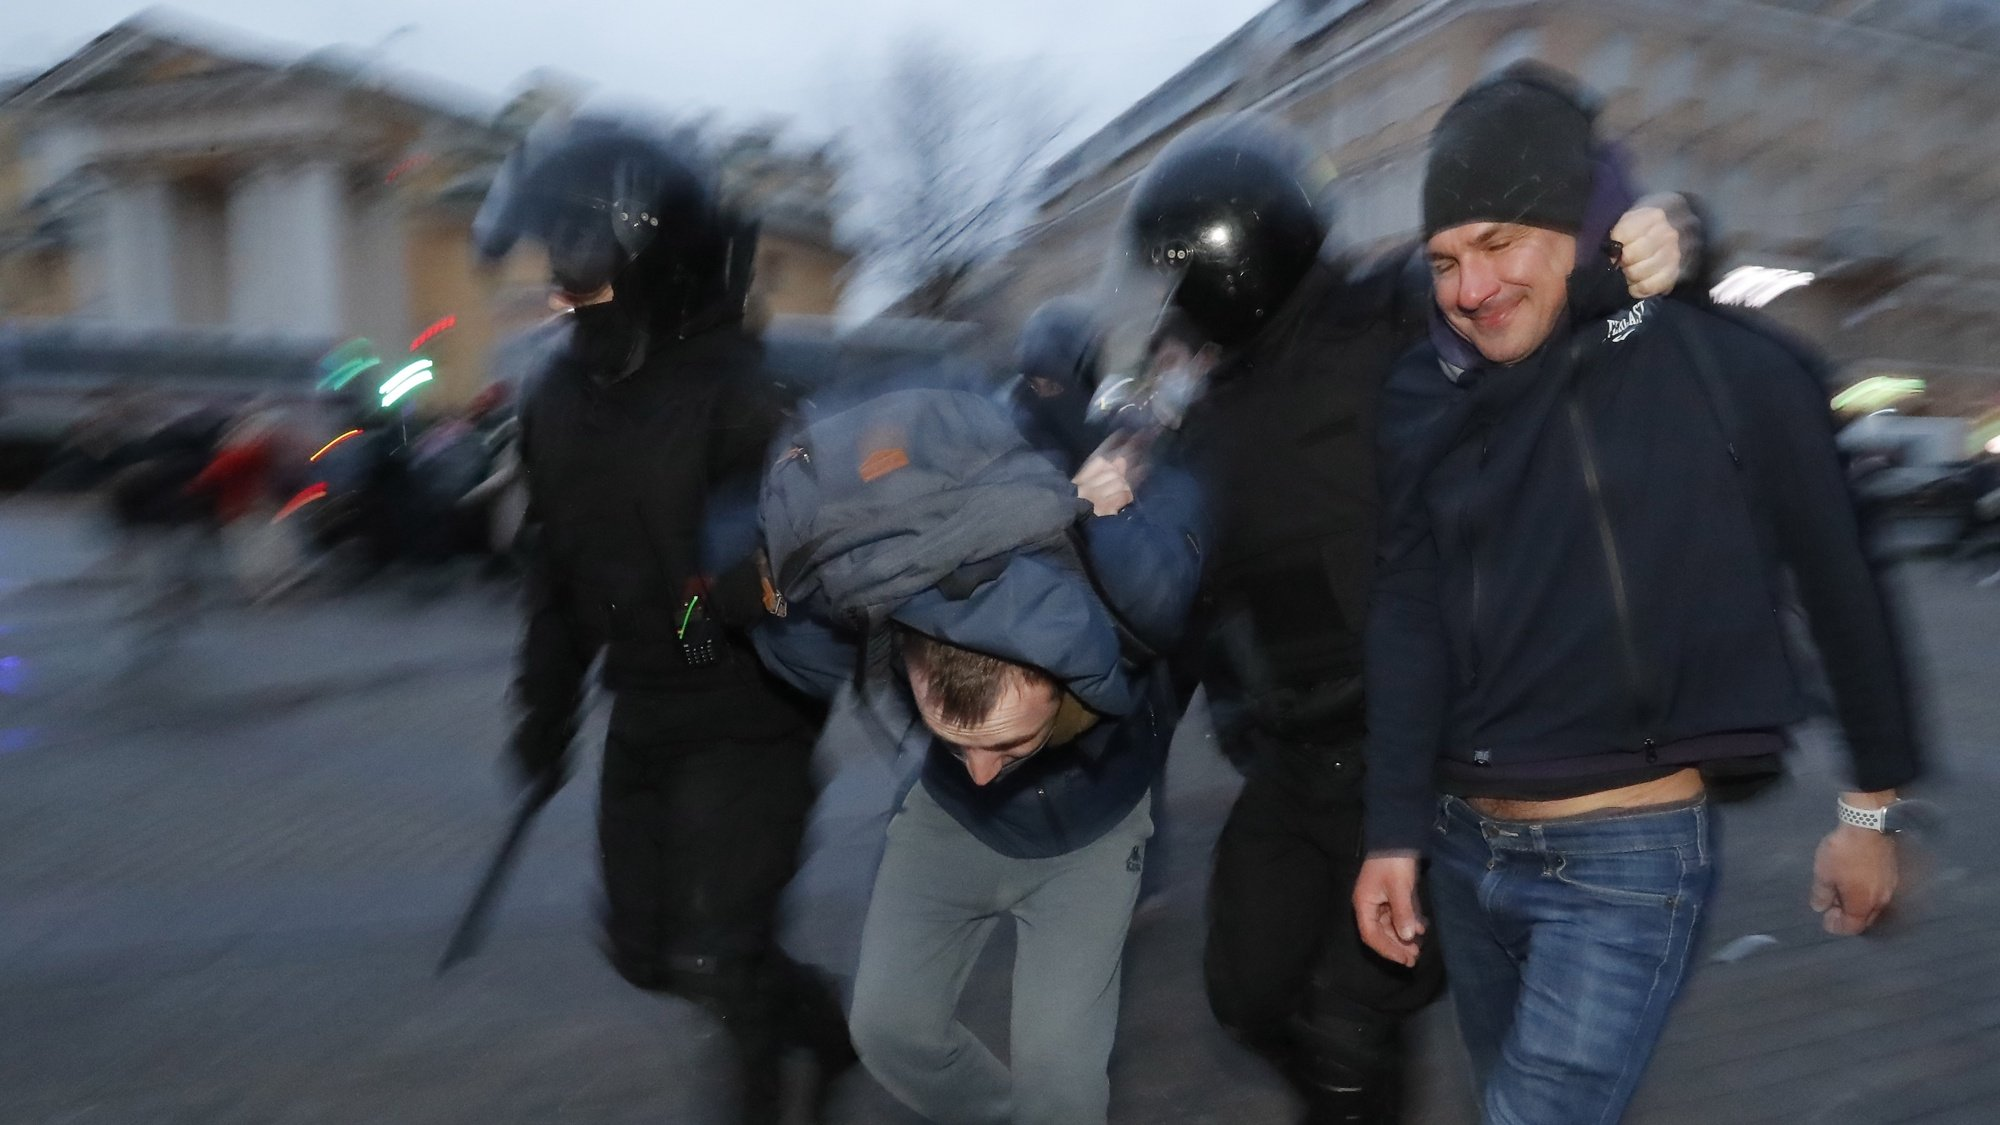 epaselect epa09150807 Russian riot police officers detain men during opposition rally in St. Petersburg, Russia, 21 April 2021. Unauthorized rallies in support of Alexei Navalny are expected to be held throughout Russia. Russian opposition leader Alexei Navalny has been transferred from the penal colony No. 2 (IK-2) in Pokrov, Vladimir region, to the regional prison hospital in IK-3 in Vladimir for receiving vitamin therapy. The decision was taken amid Navalny's hunger strike and announced by his team members fearing for his life.  EPA/ANATOLY MALTSEV